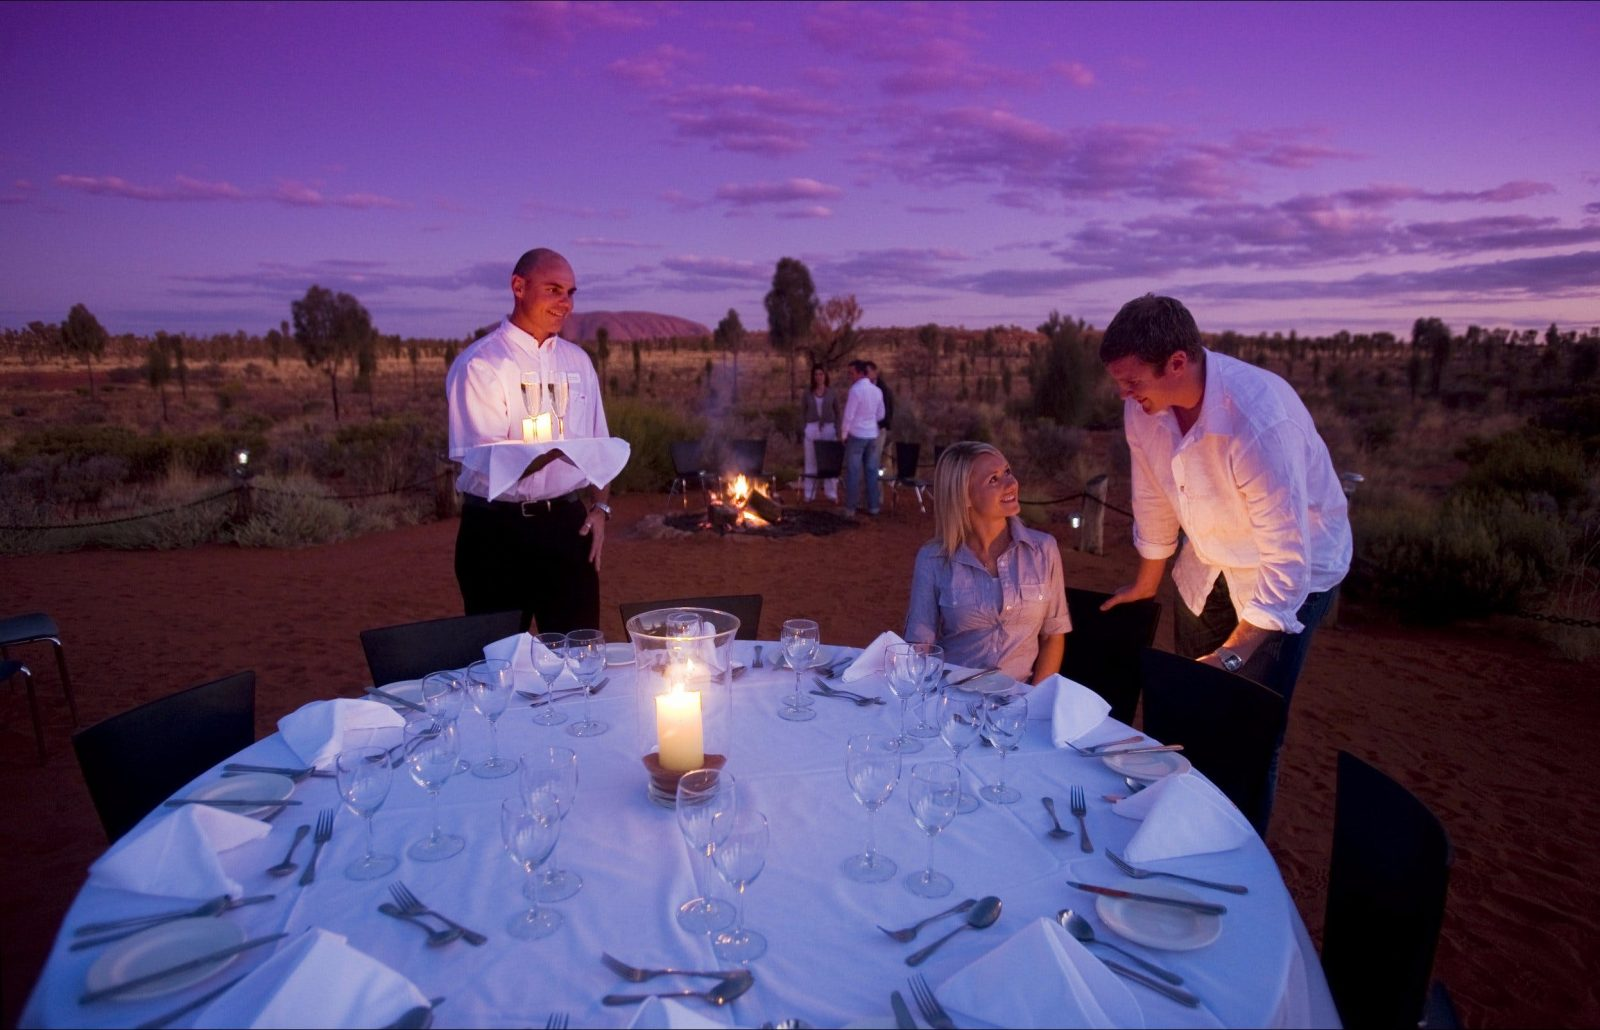 Dine under a desert sky at Sounds of Silence